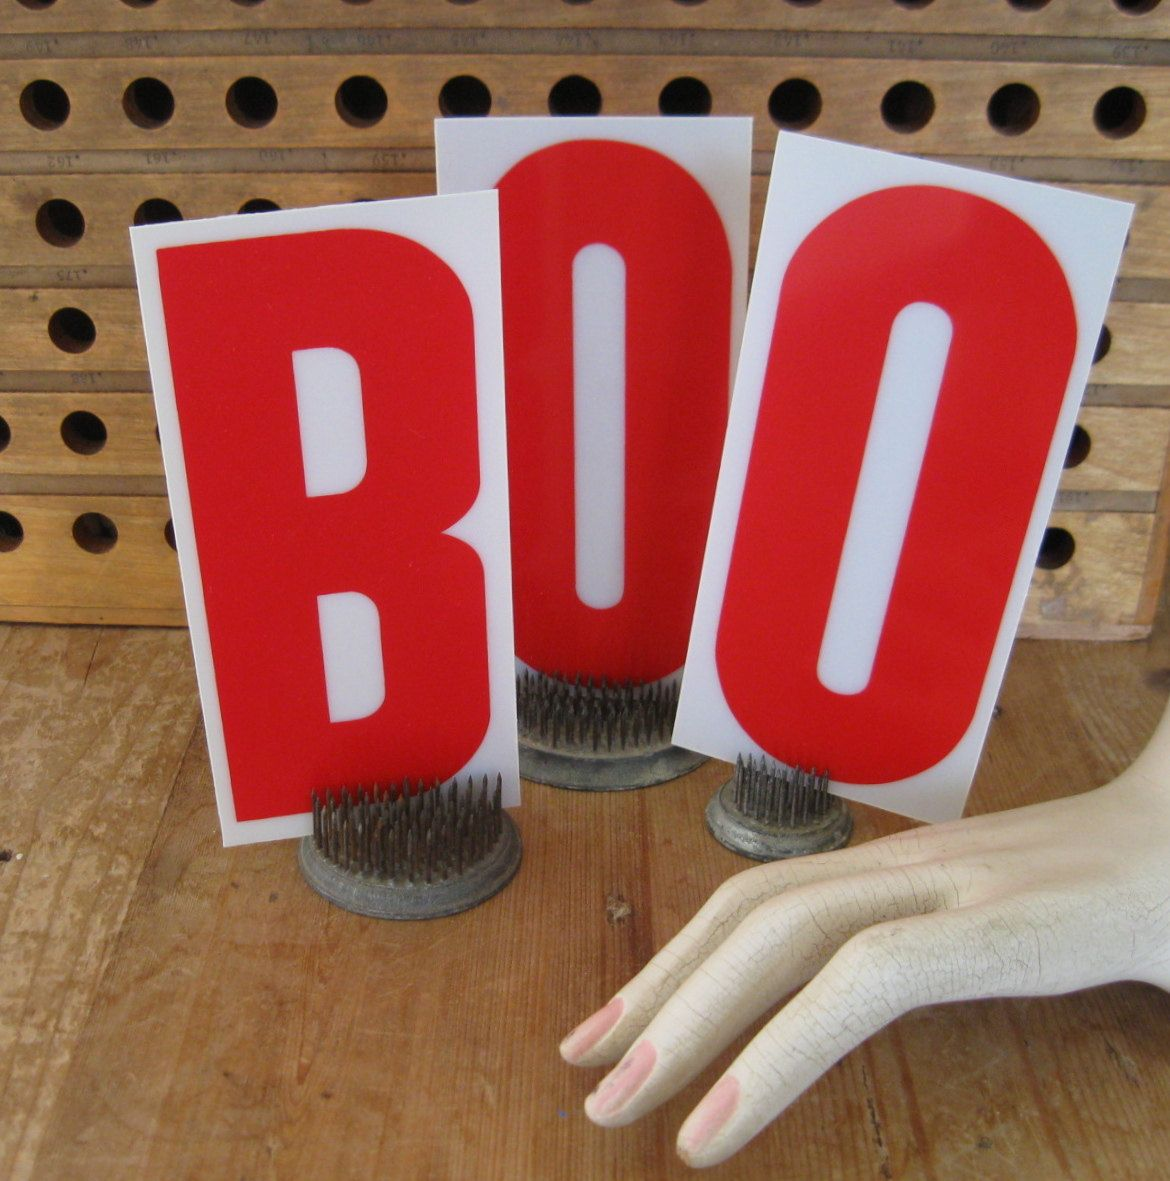 Boo Vintage Sign Letters Red Letters Plastic Sign Letters Halloween Decor Halloween Supplie Vintage Display Light Up Signs Halloween Party Decor